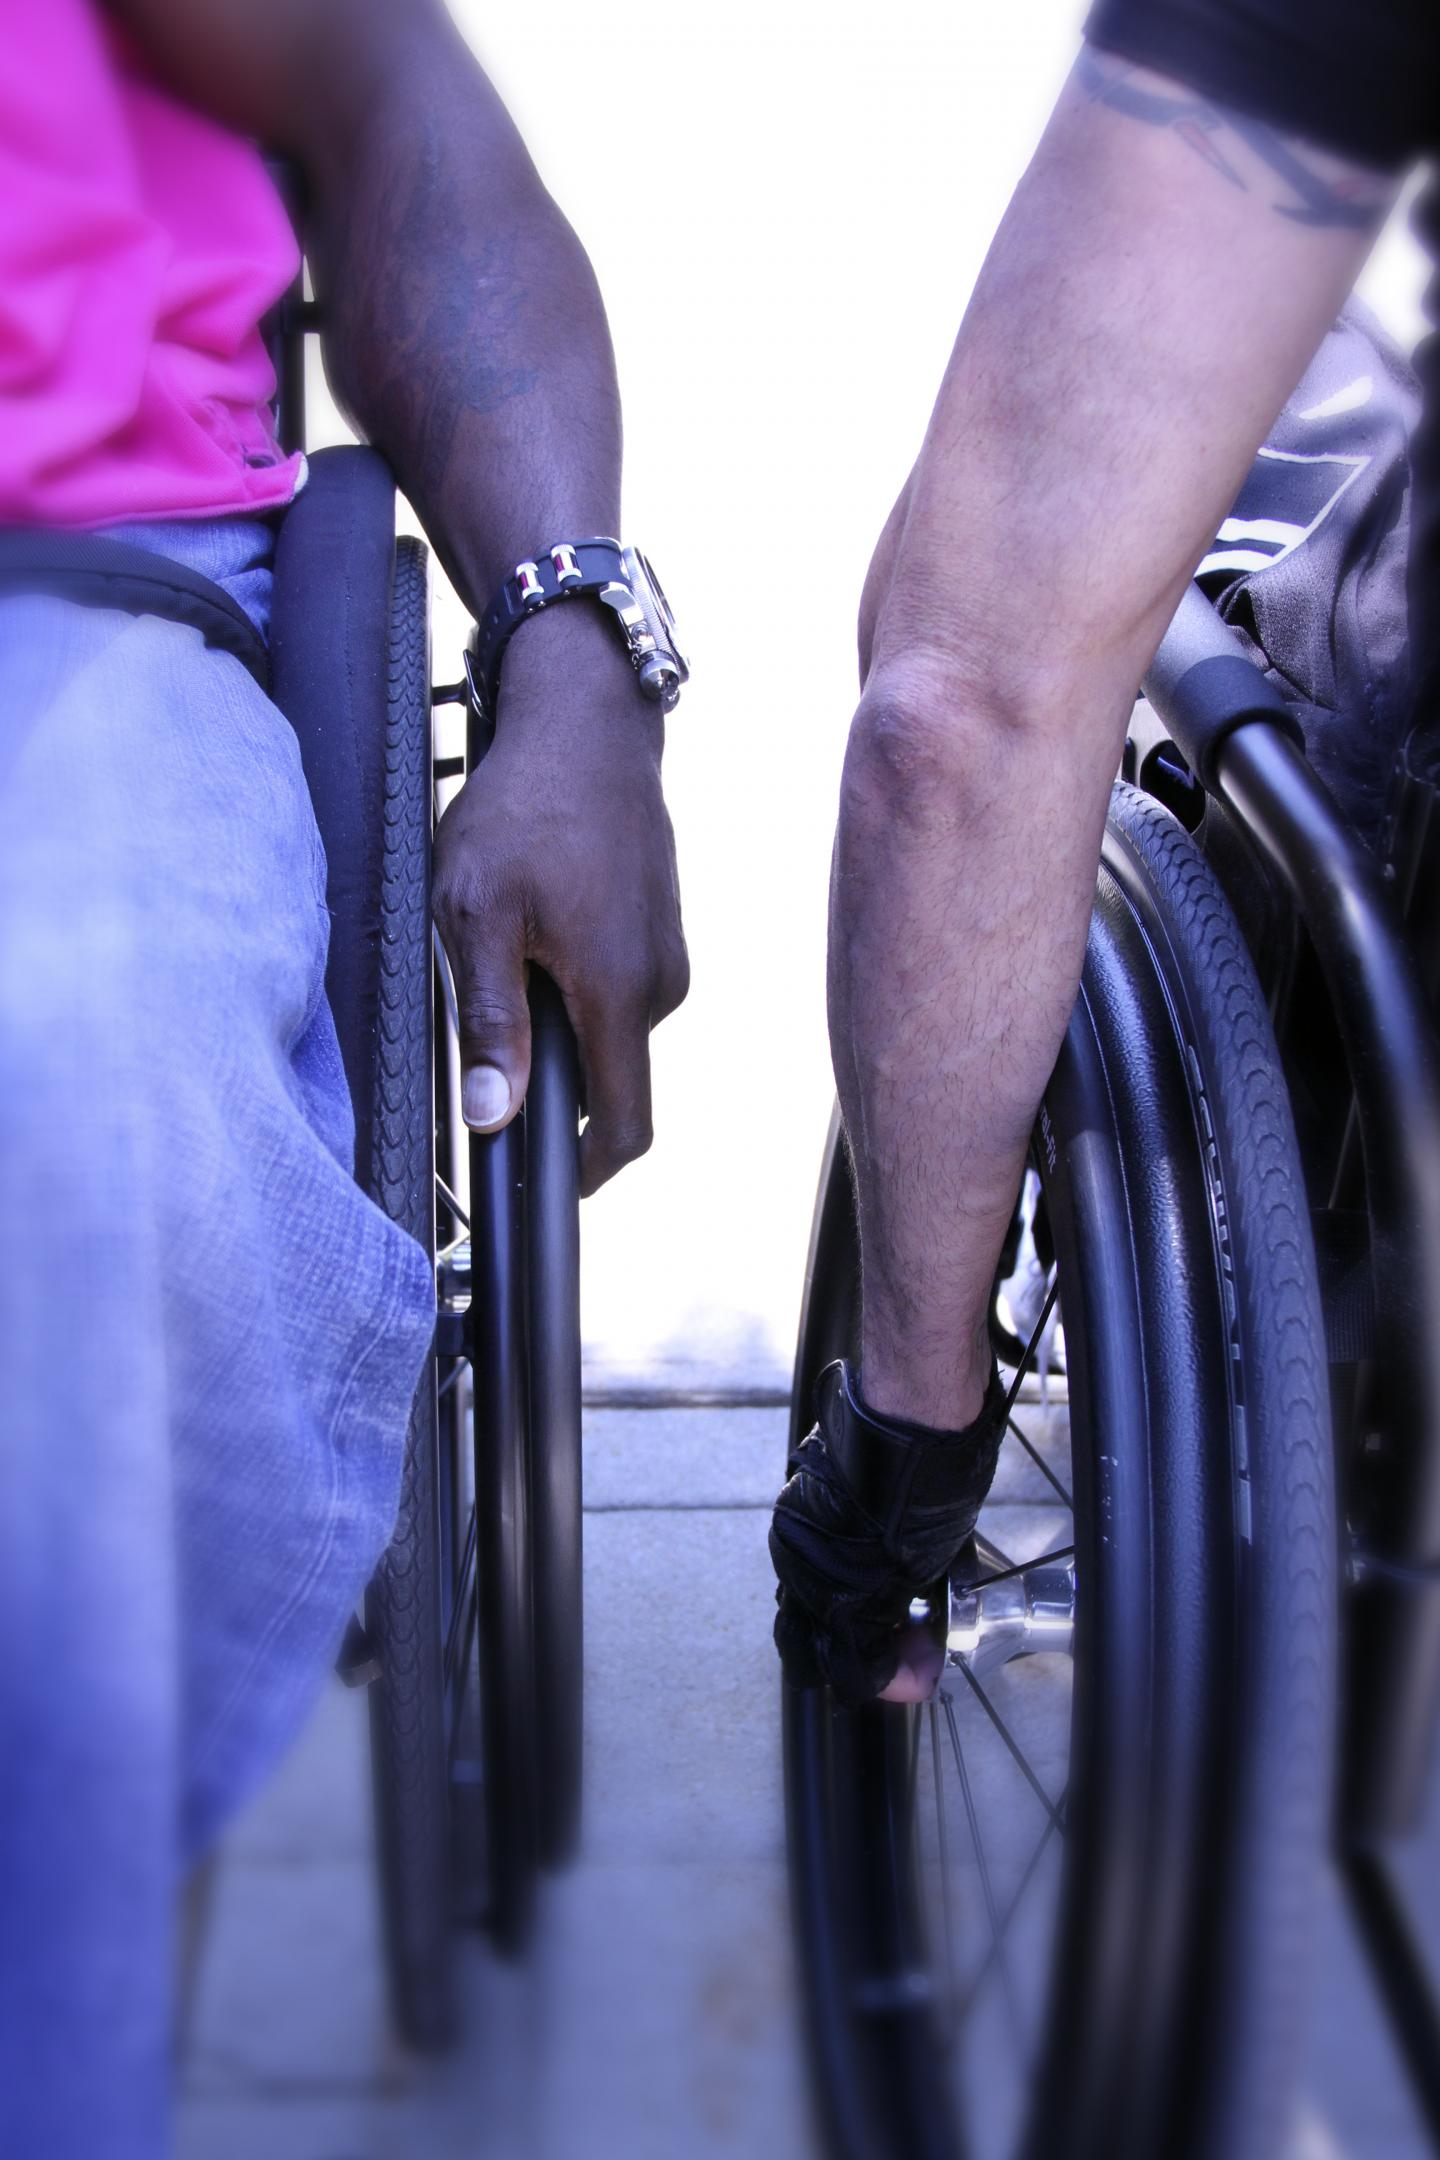 Spinal Cord Injury Research at Kessler Foundation